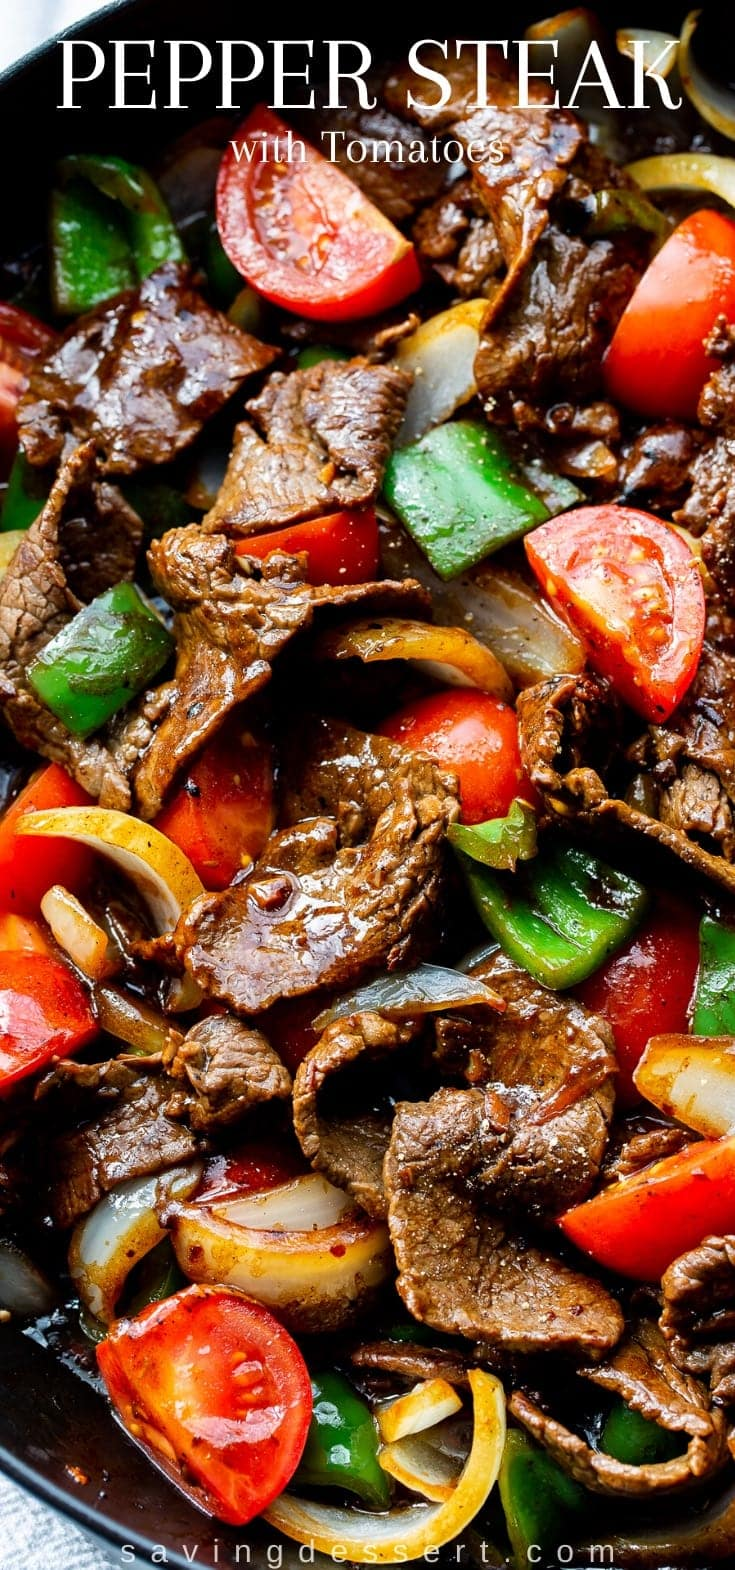 A skillet filled with thin sliced steak, tomatoes, onions and green peppers